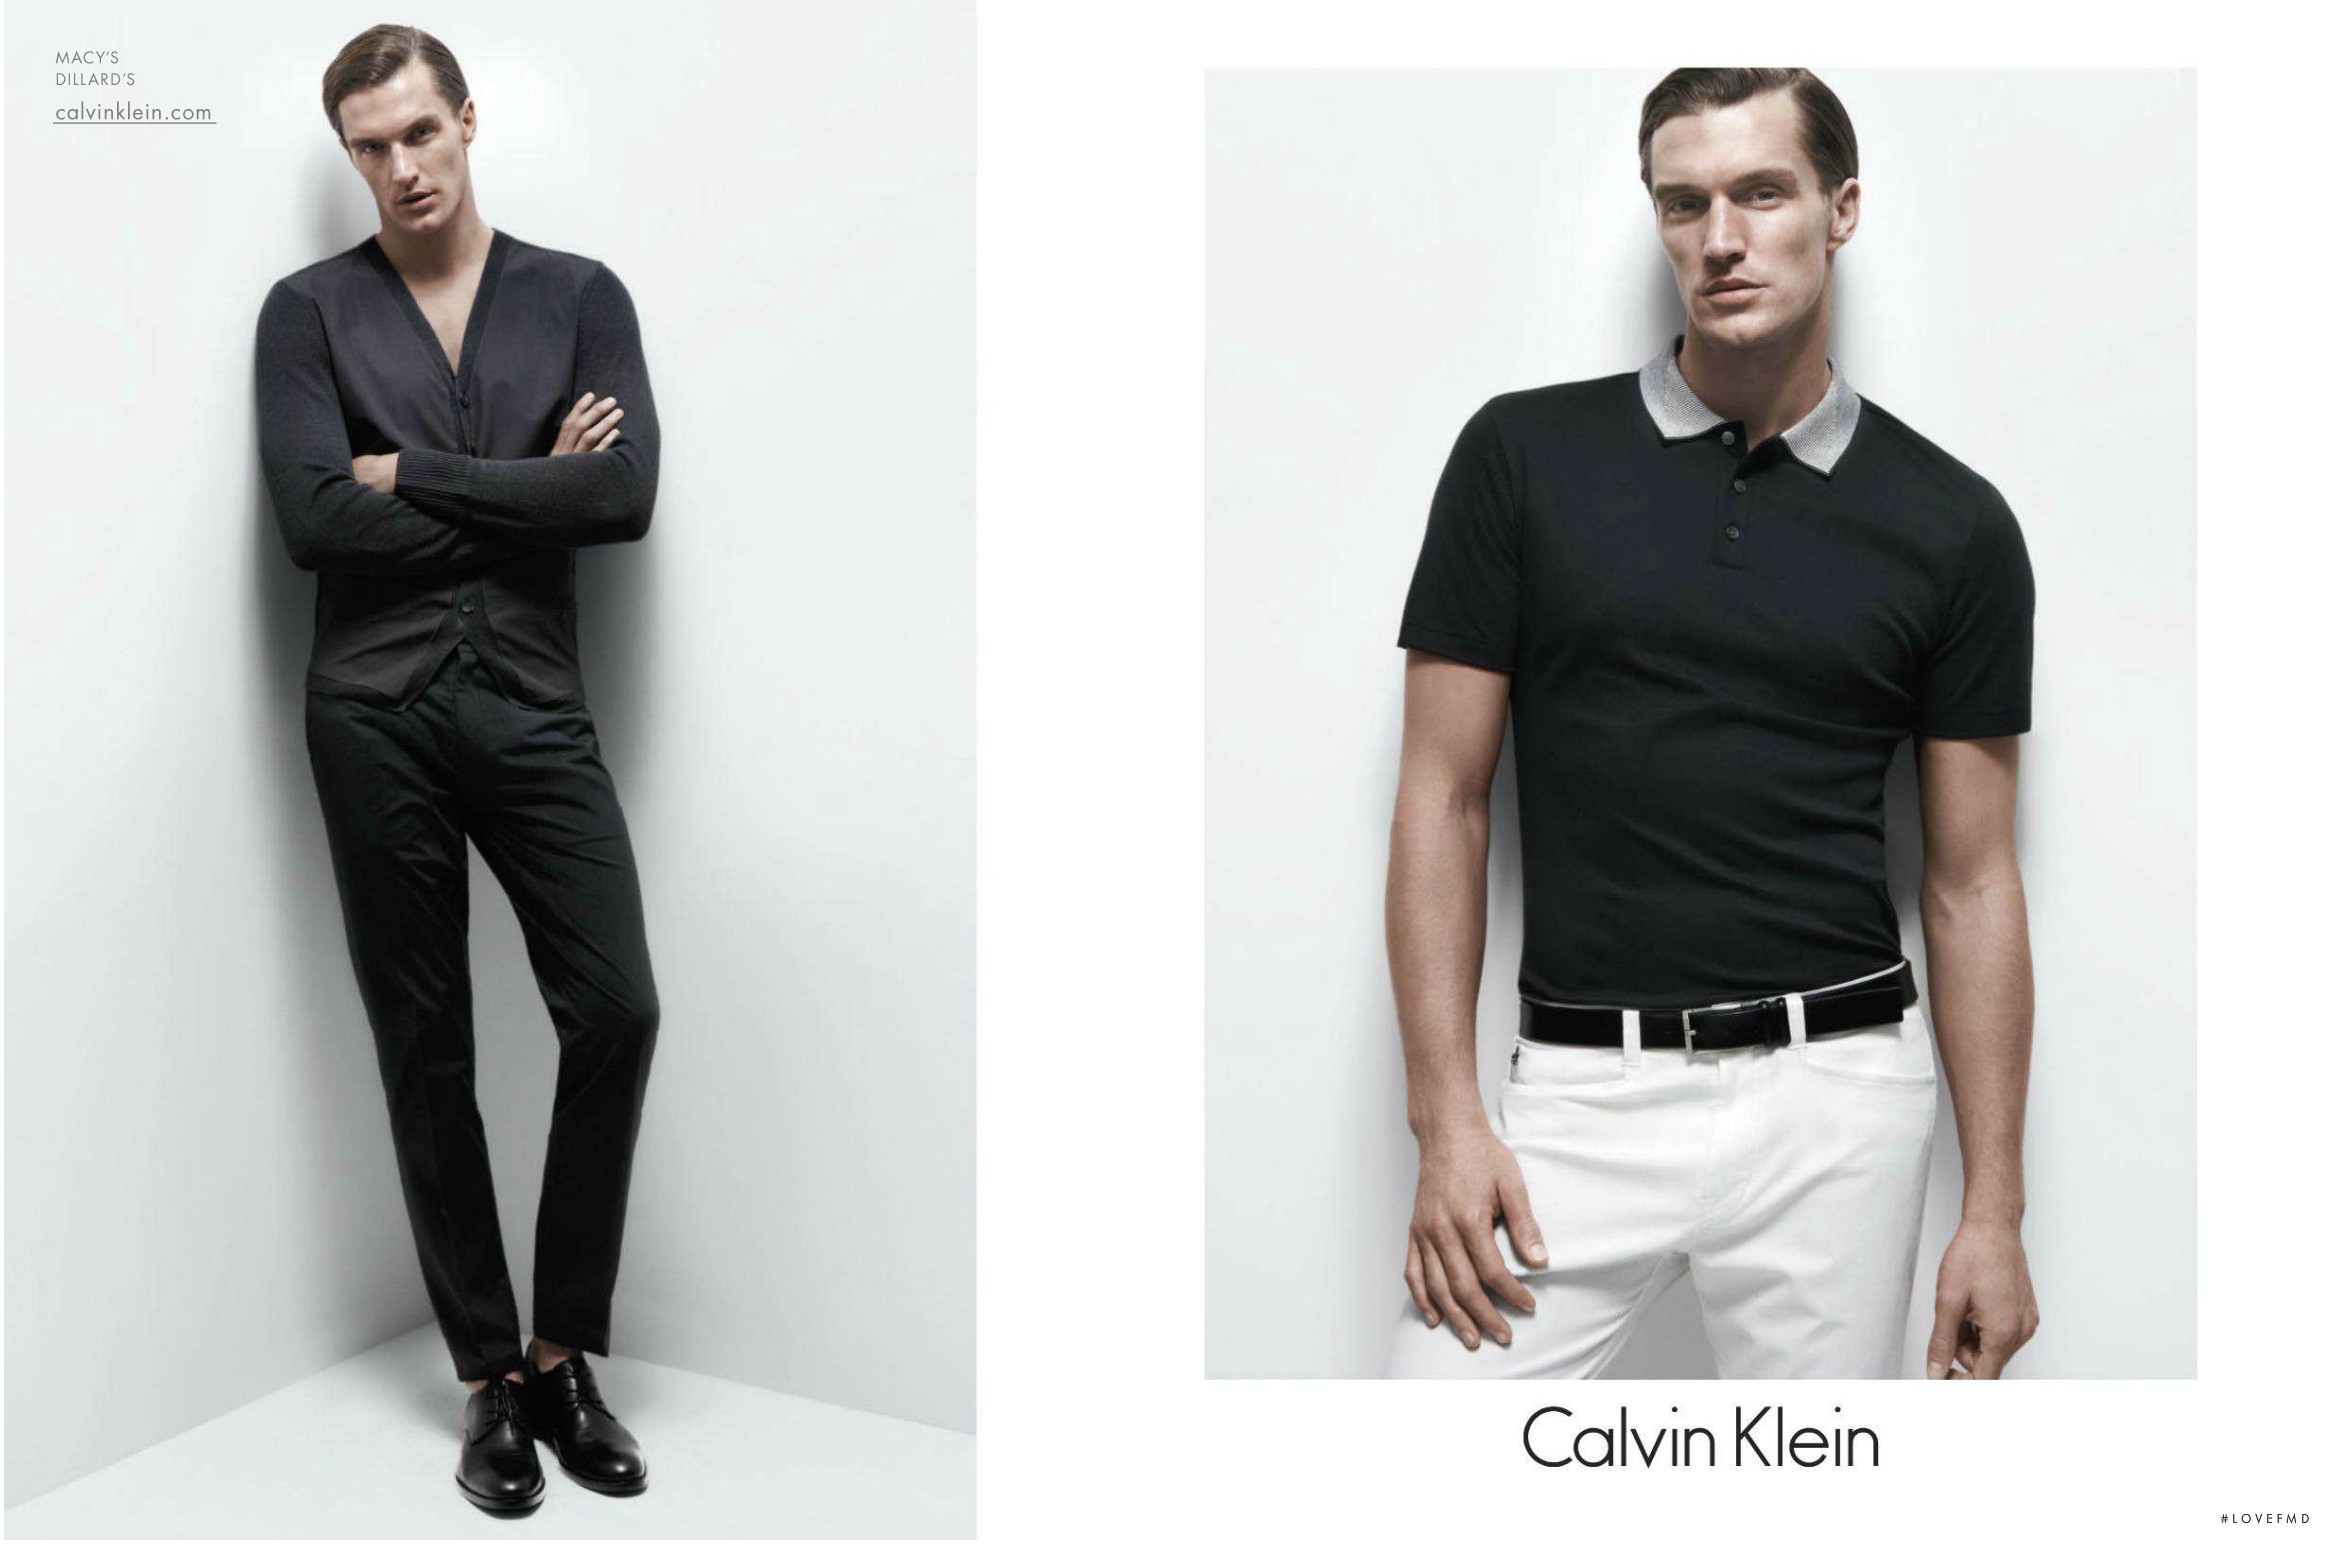 Calvin Klein White Label AutumnWinter 2012 Advertising Campaign pictures